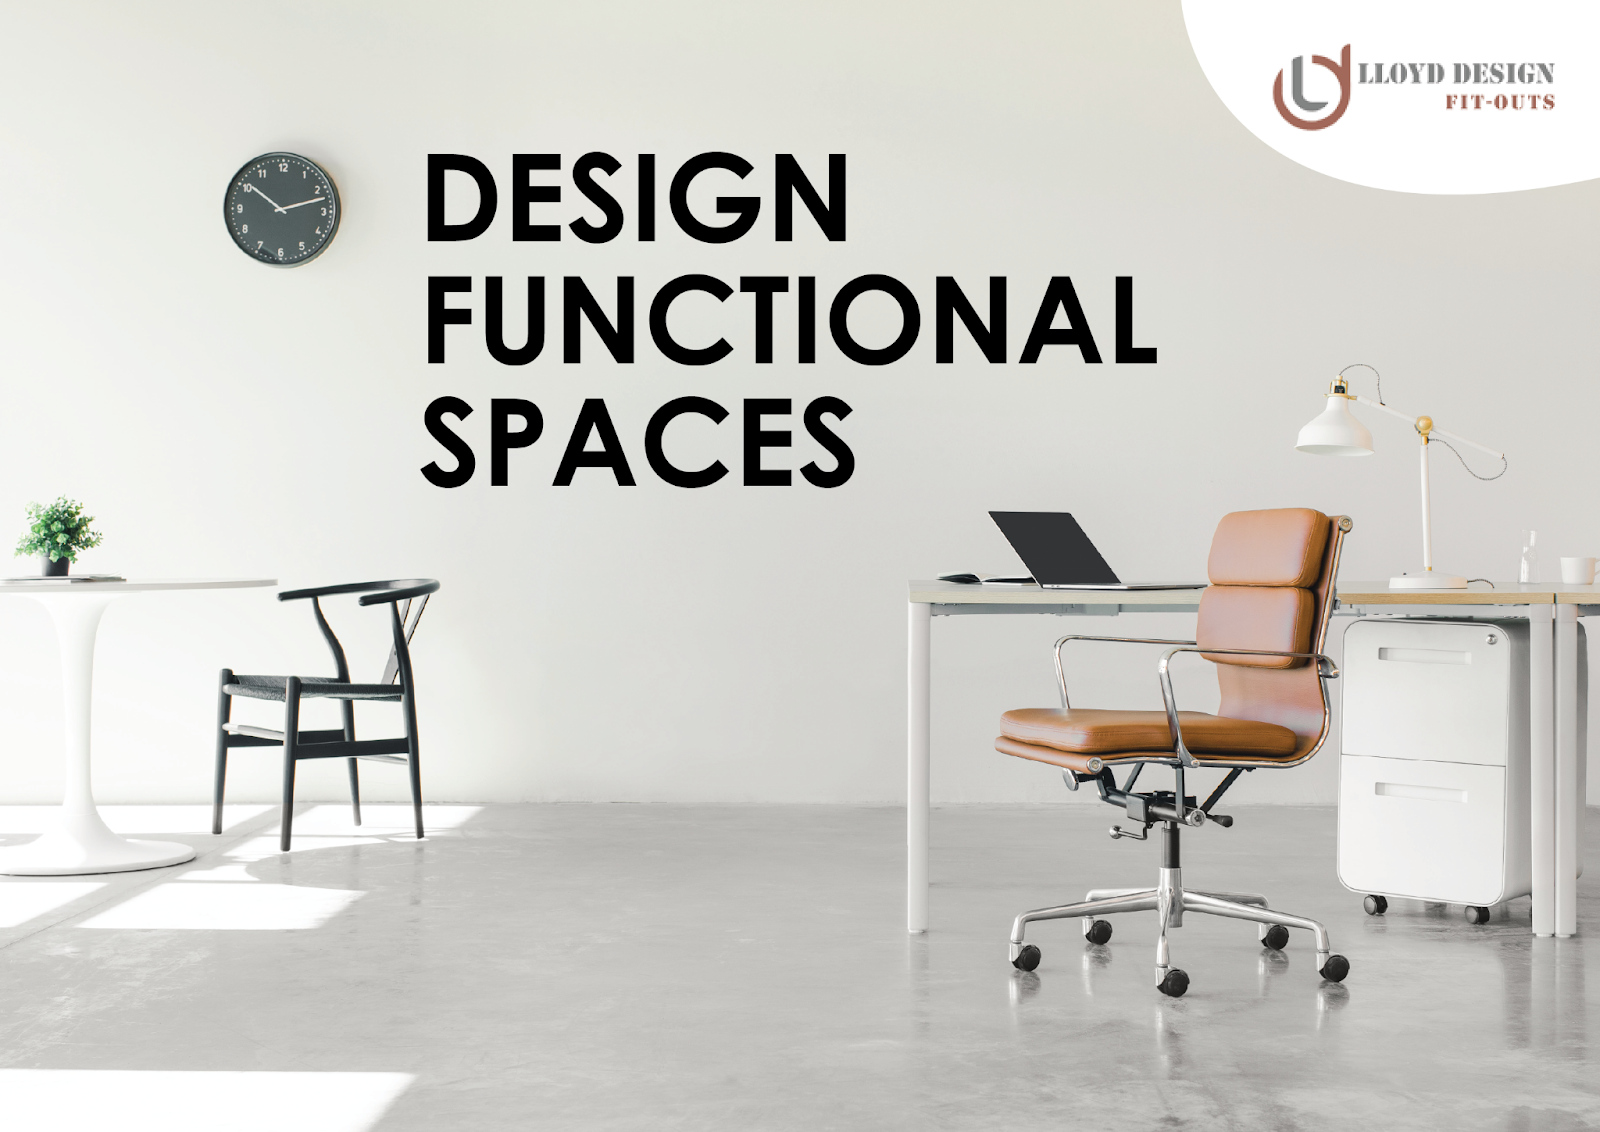 Design Functional Spaces by Best interior design companies in dubai - 3 ways to design functional spaces